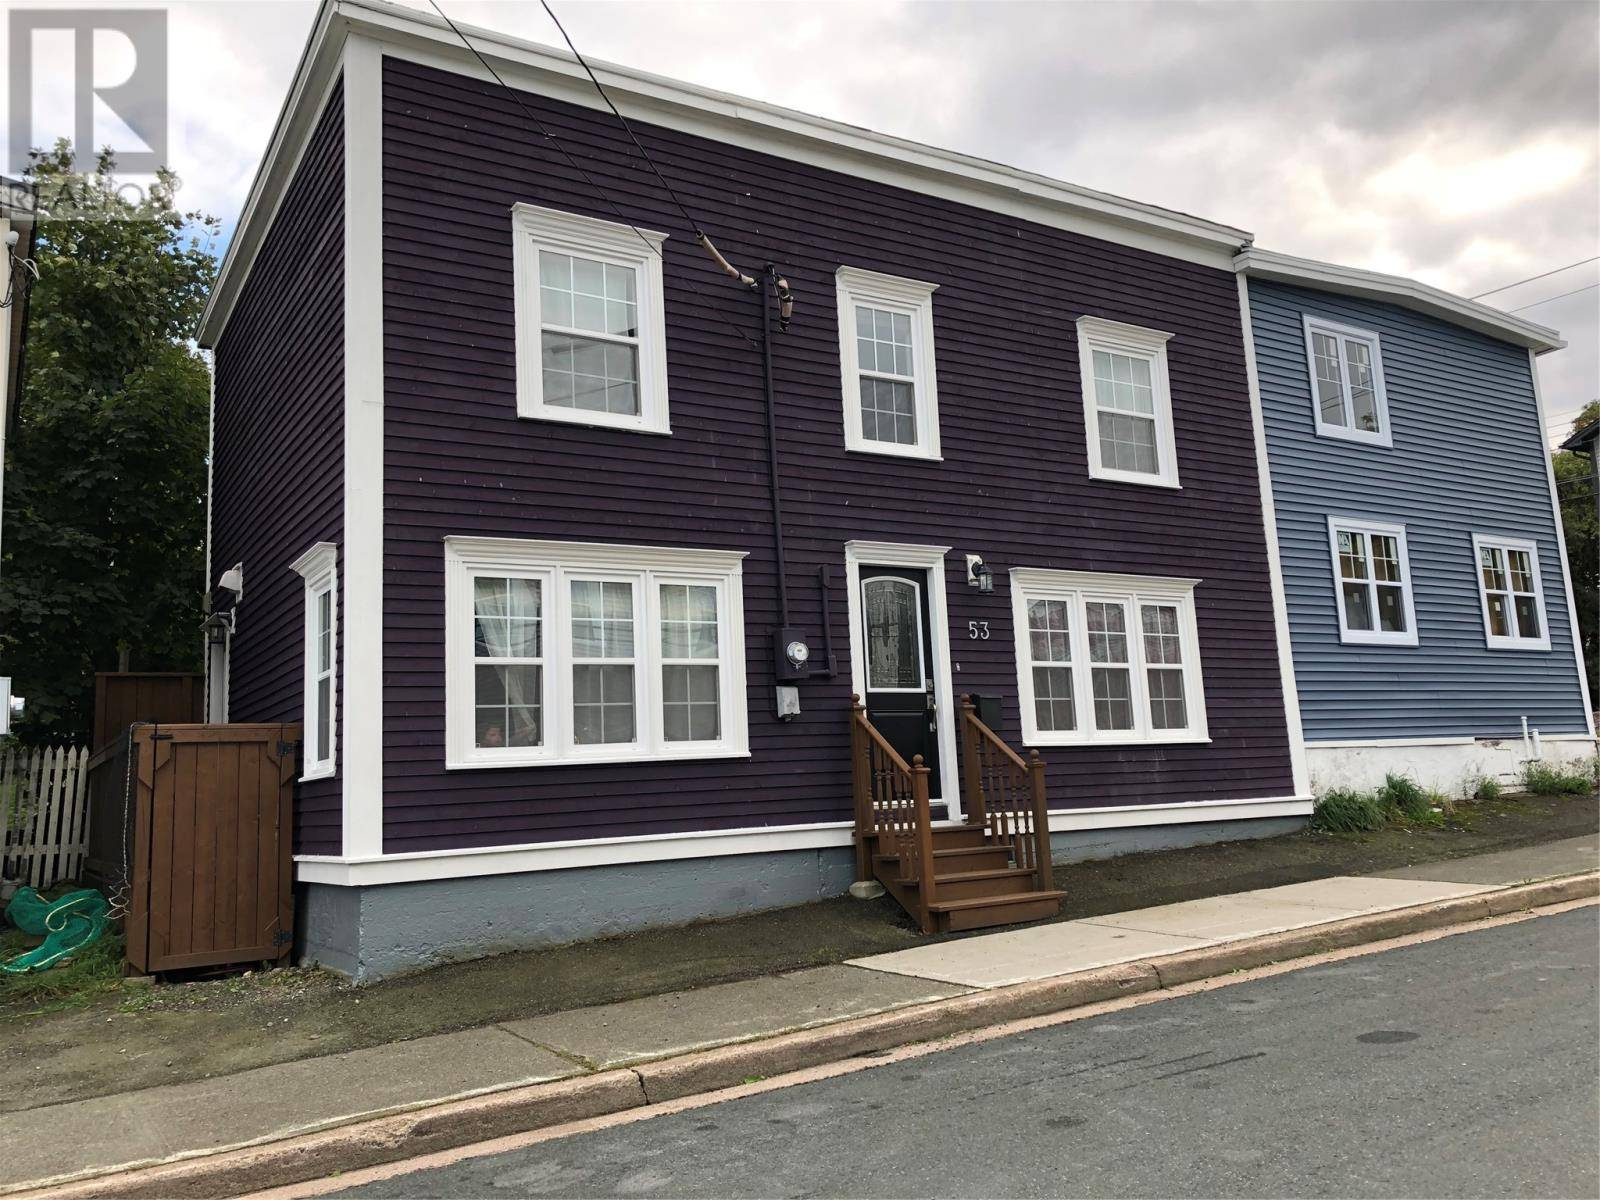 House for sale at 53 Fleming St St. John's Newfoundland - MLS: 1205706